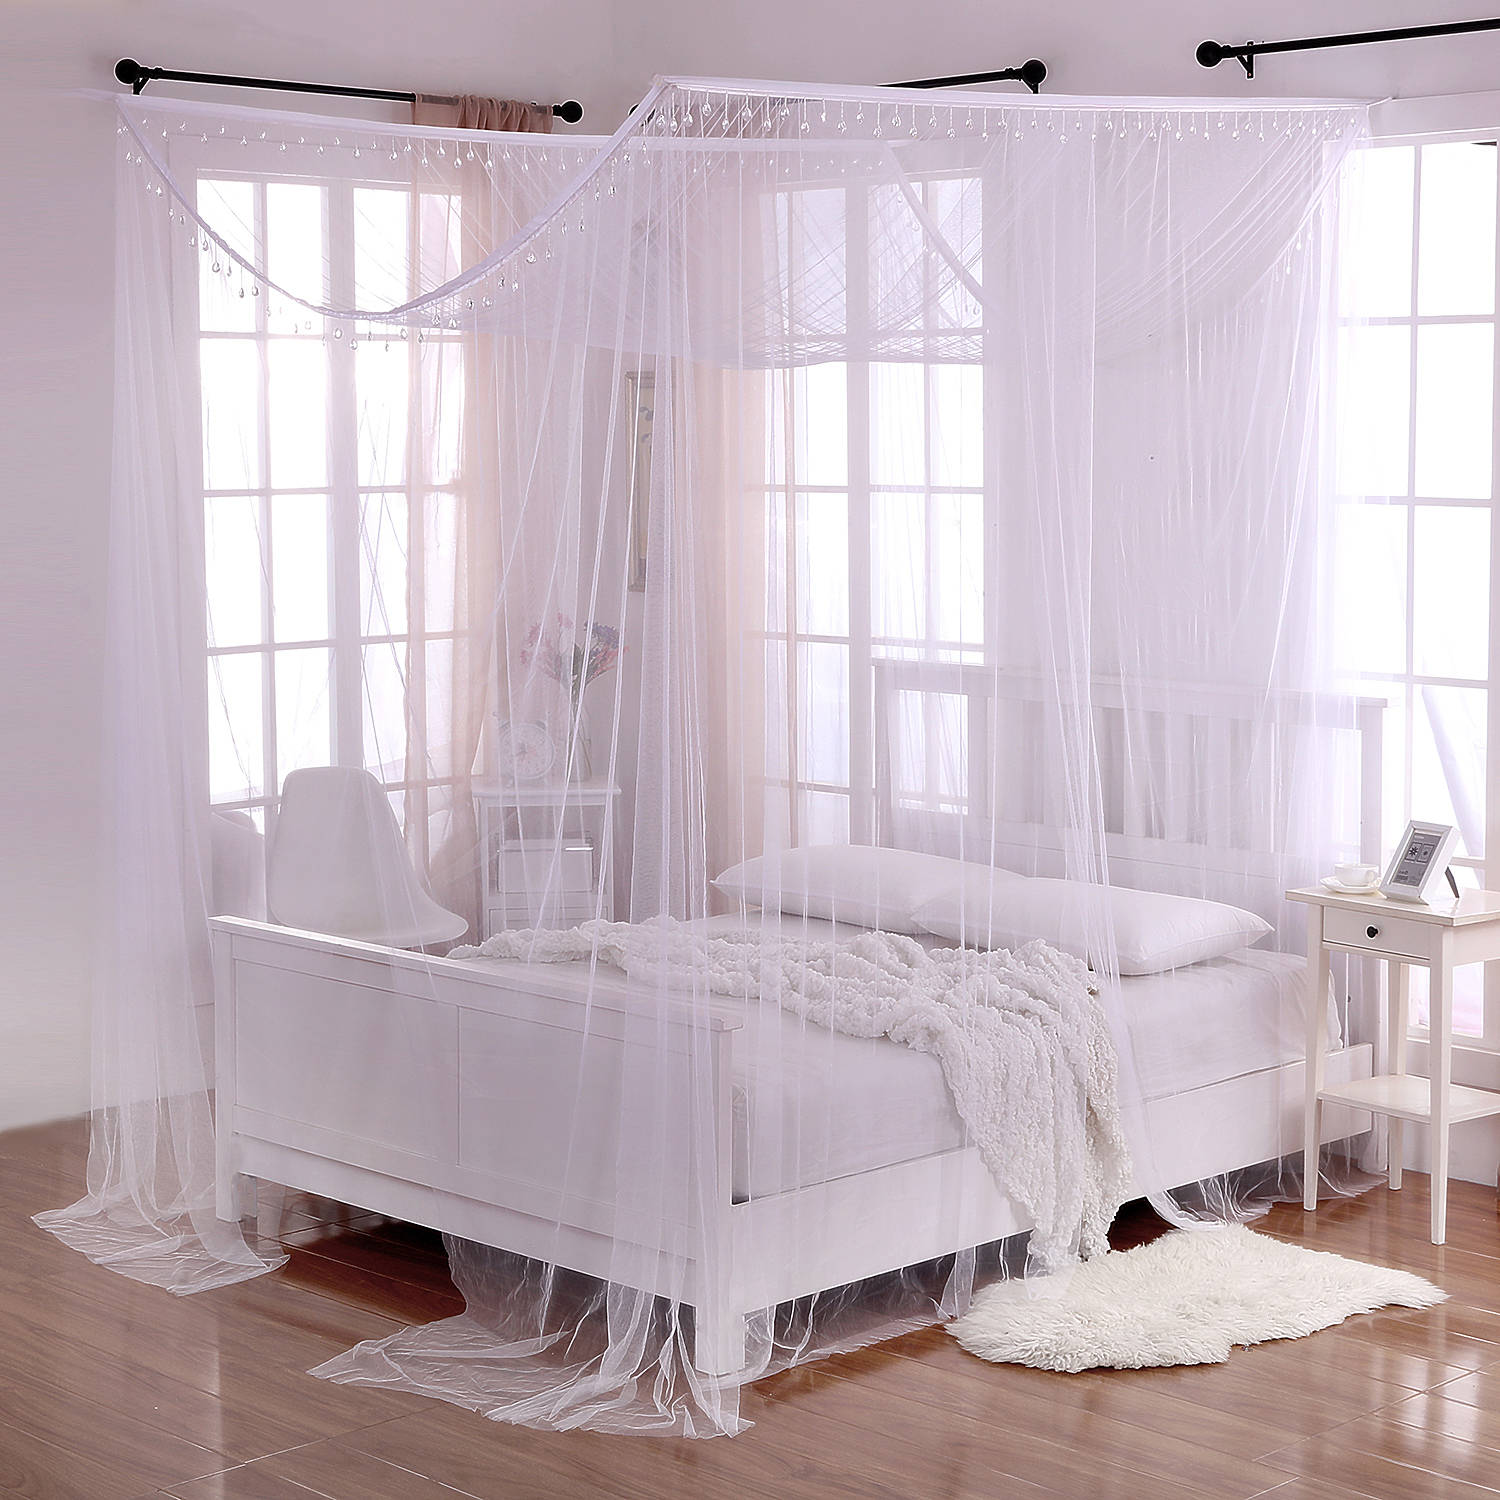 Palace Crystal 4-Post Bed Sheer Mosquito Net Panel Canopy